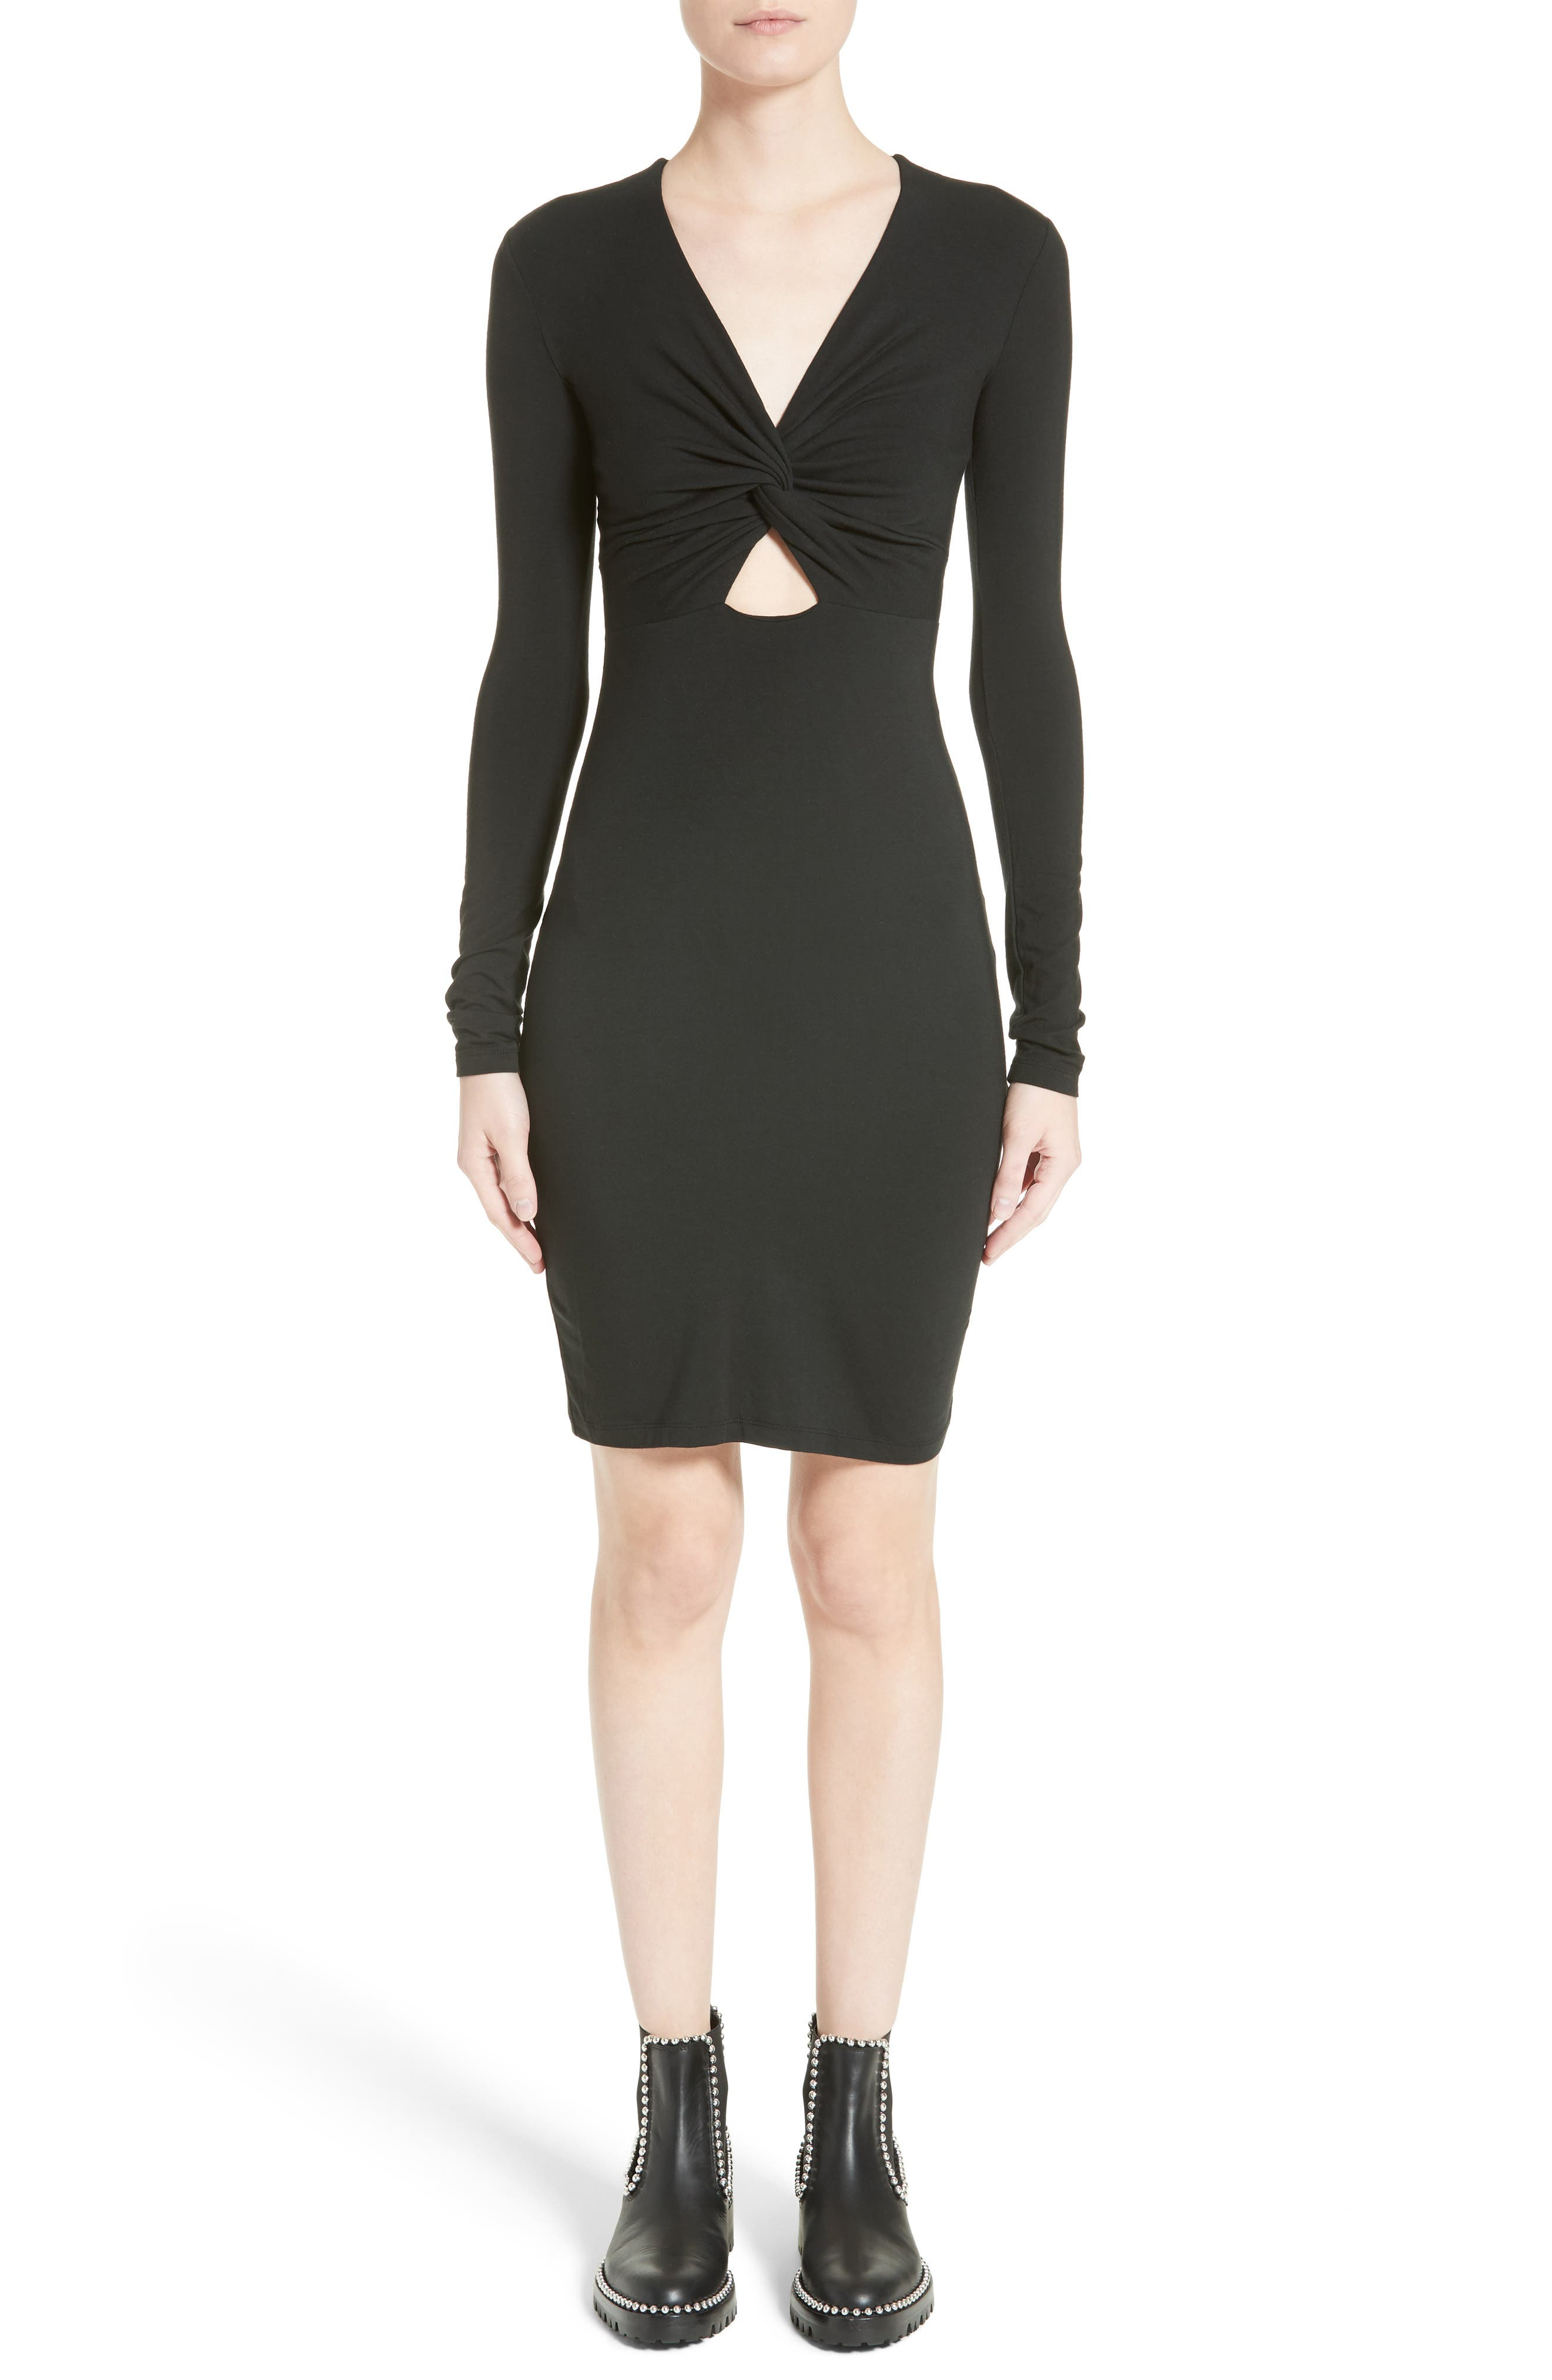 Alternate Image 1 Selected - T by Alexander Wang Twist Front Body-Con Dress